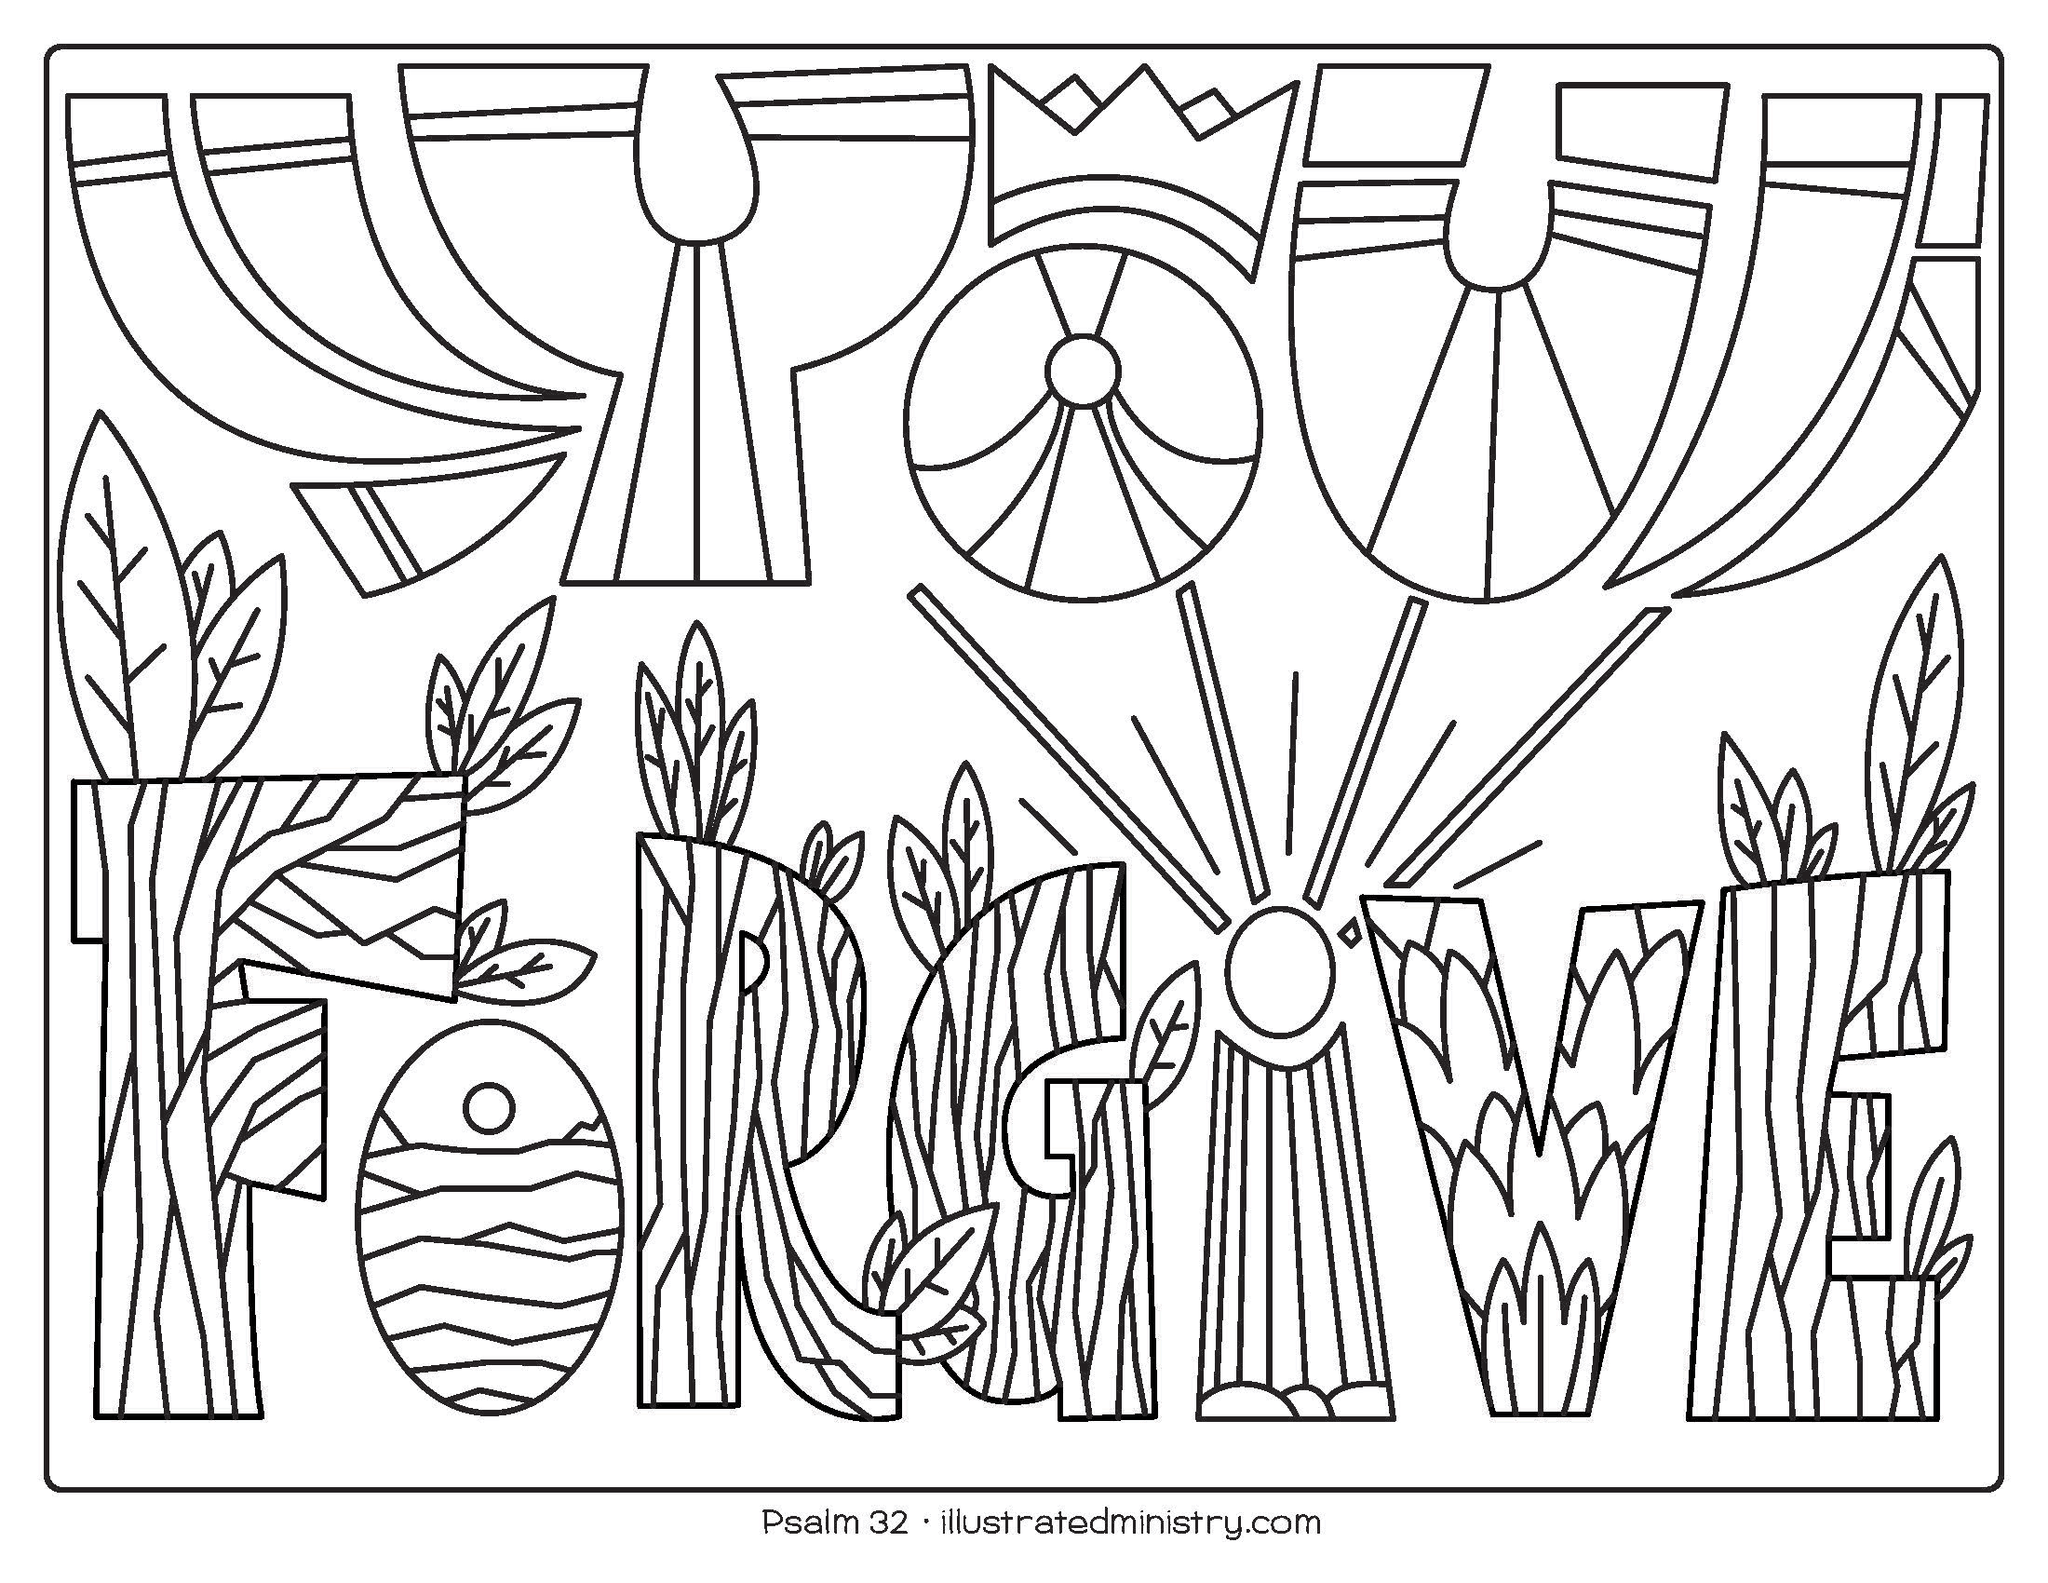 This is an image of Lent Coloring Pages Printable regarding mary magdalene